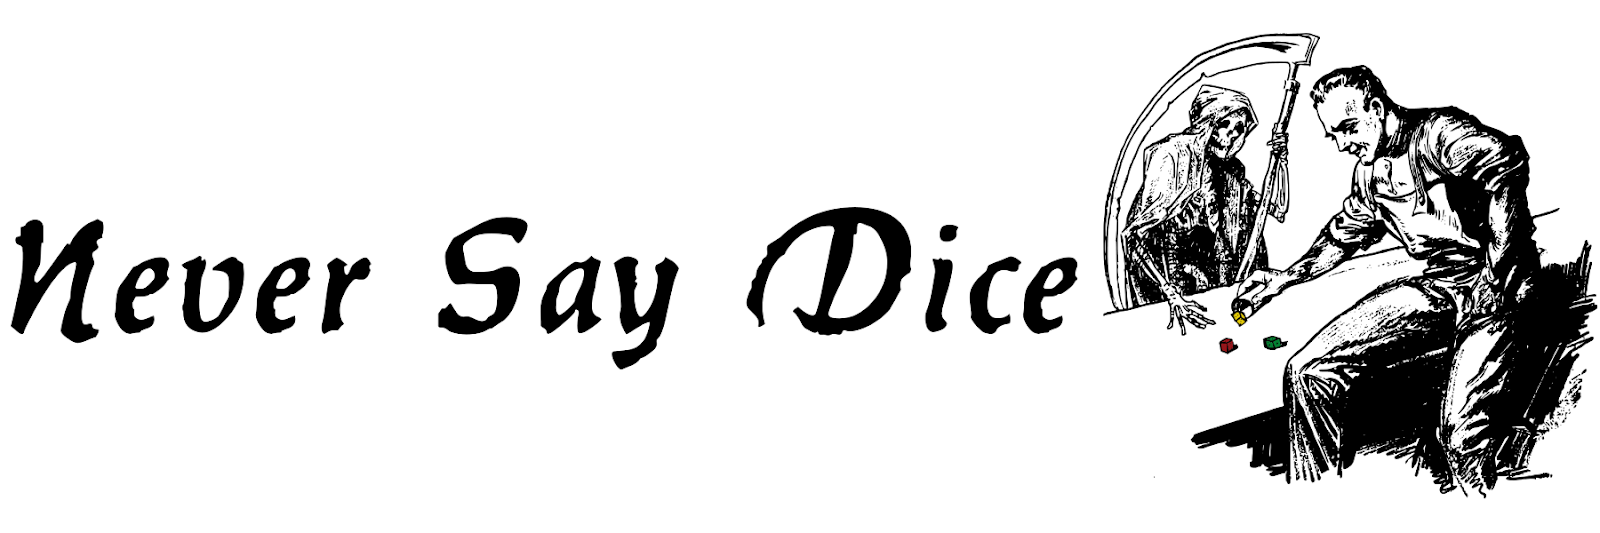 Never Say Dice